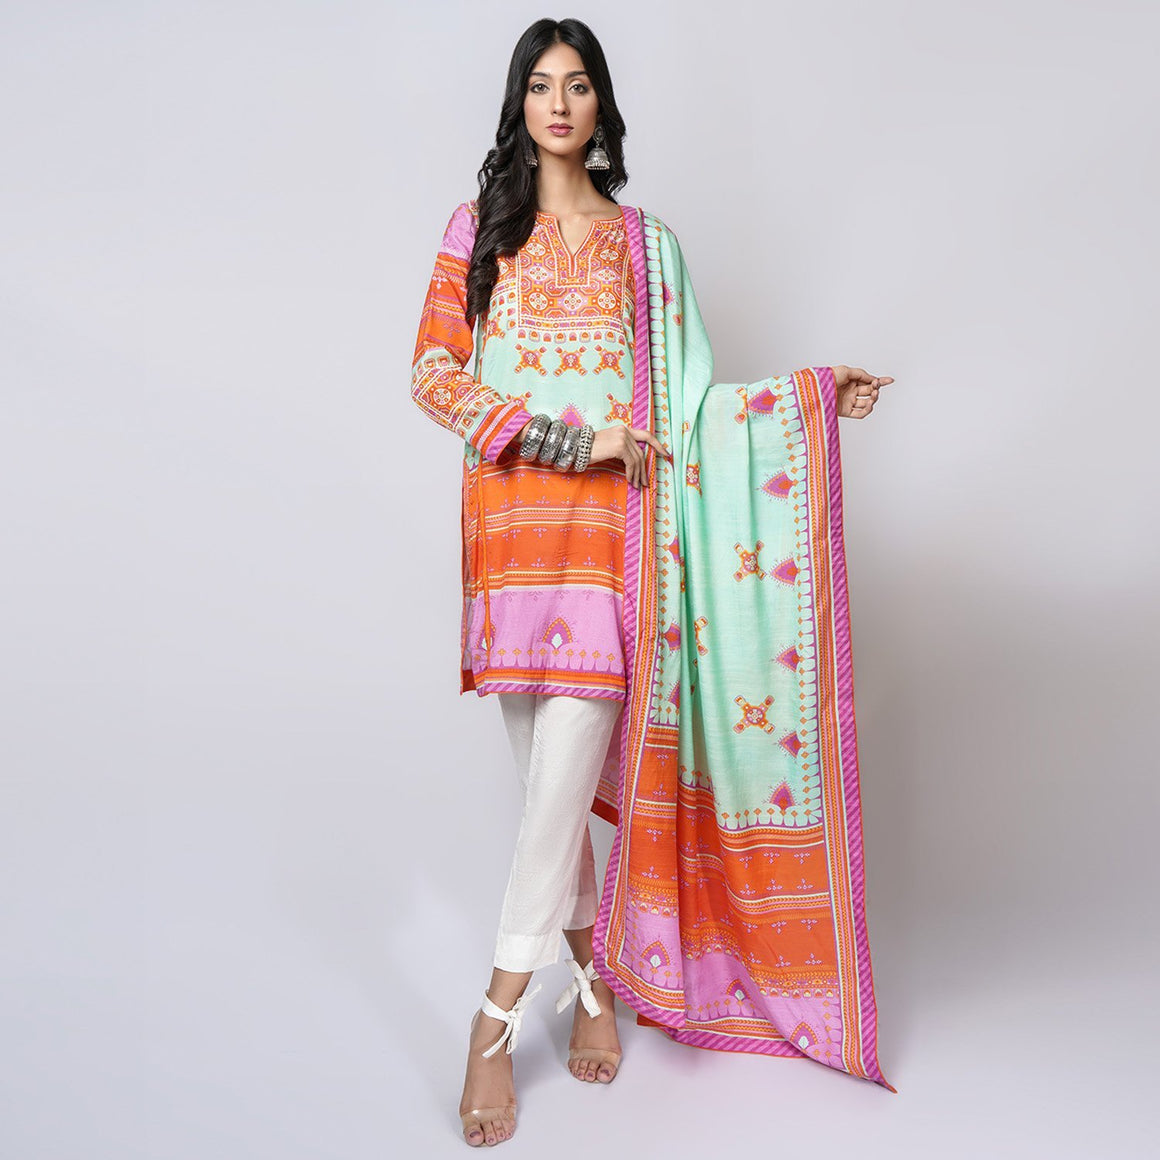 Rizwan Beyg - Baluchi Print Sea Green Shirt with Dupatta